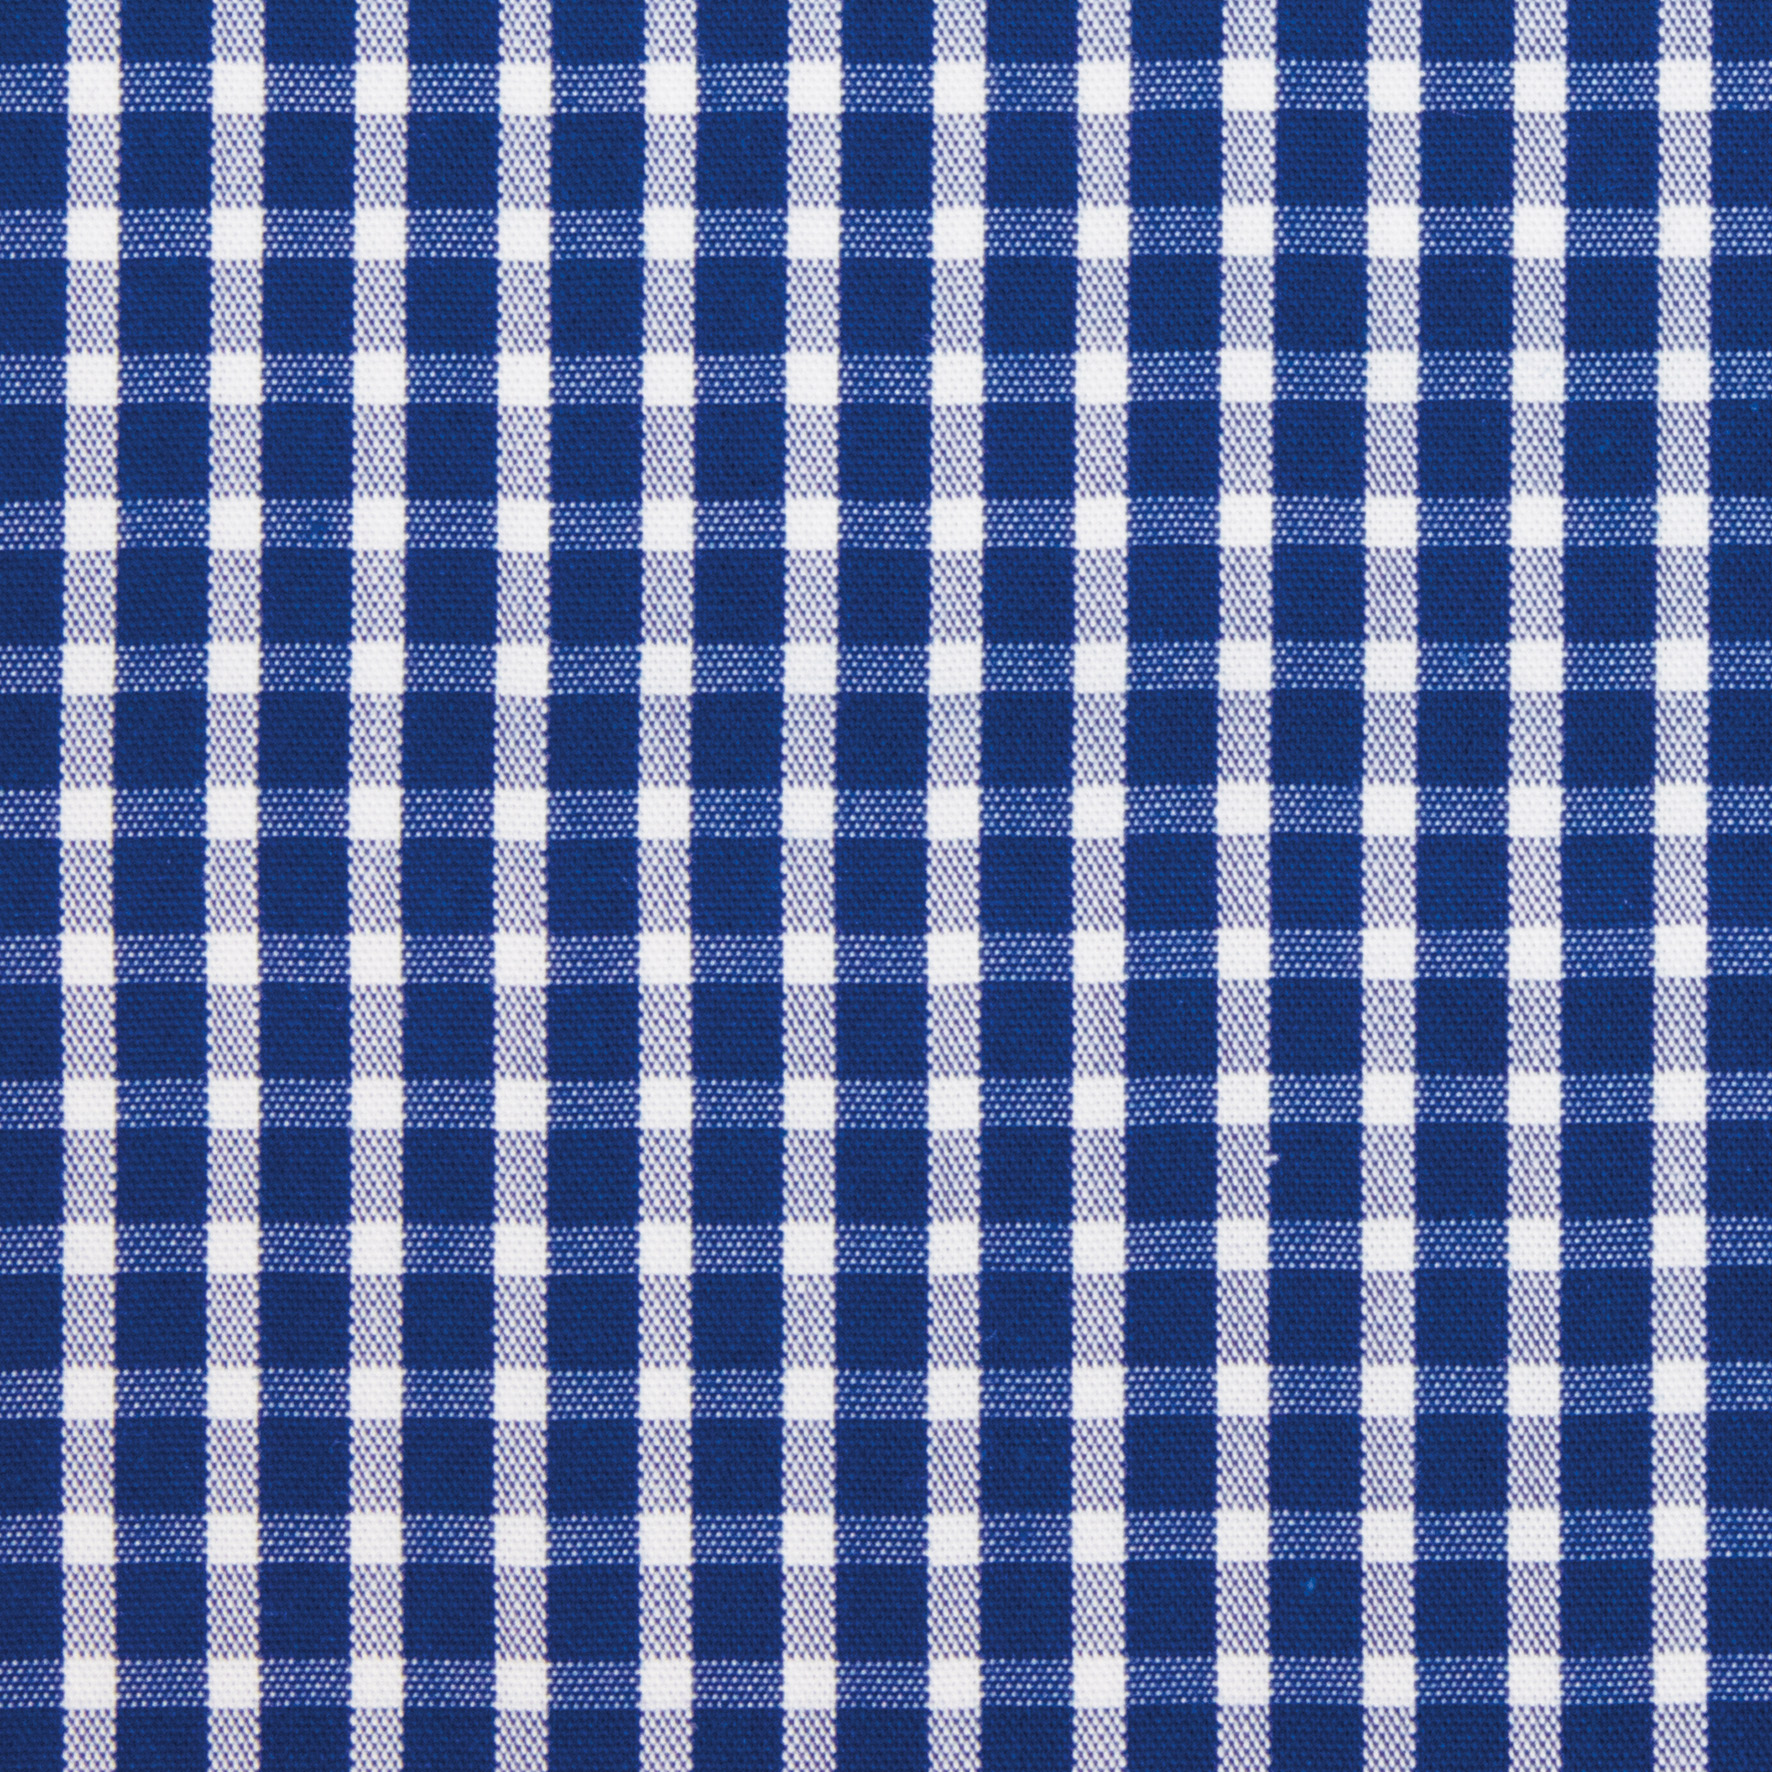 Buy tailor made shirts online - Antonio Range - Broad Blue Check